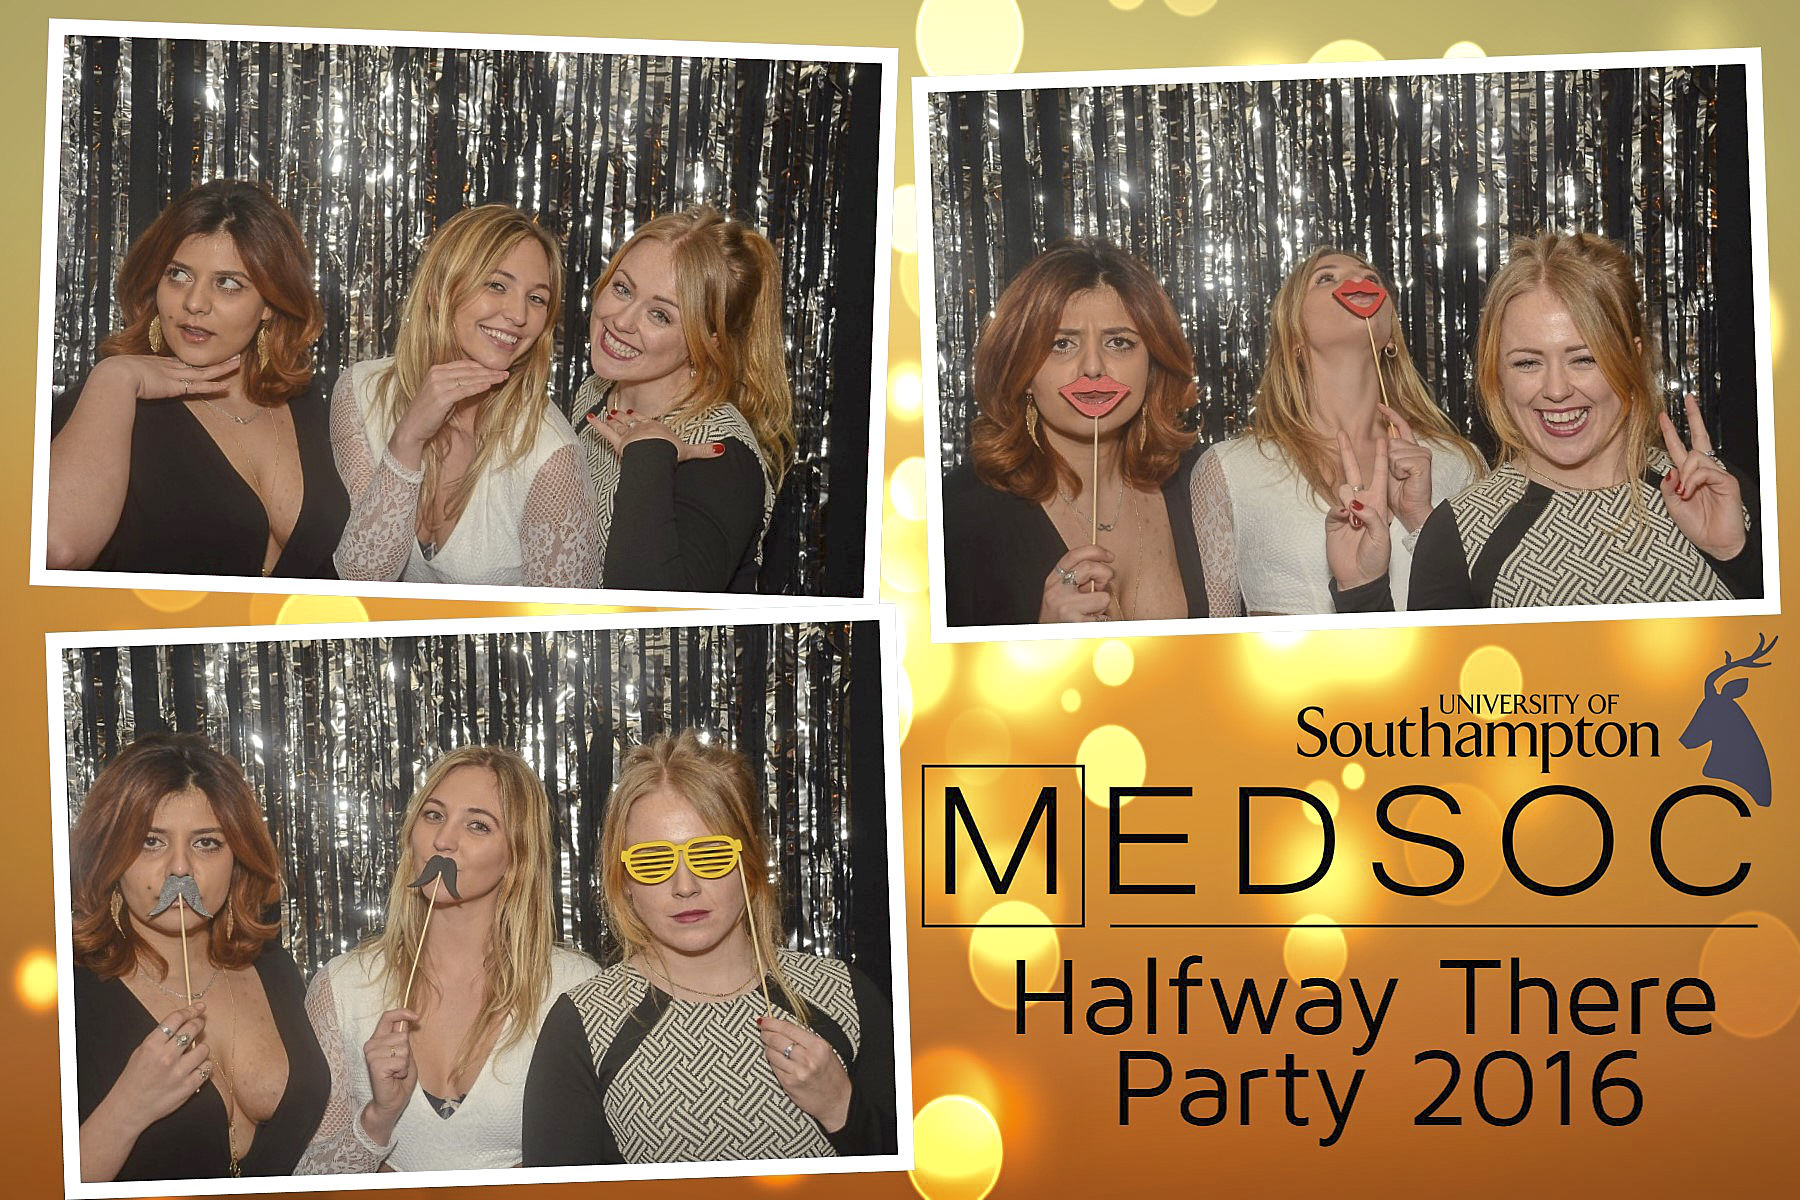 MedSoc Halfway There Party 2016 DS224041.jpg